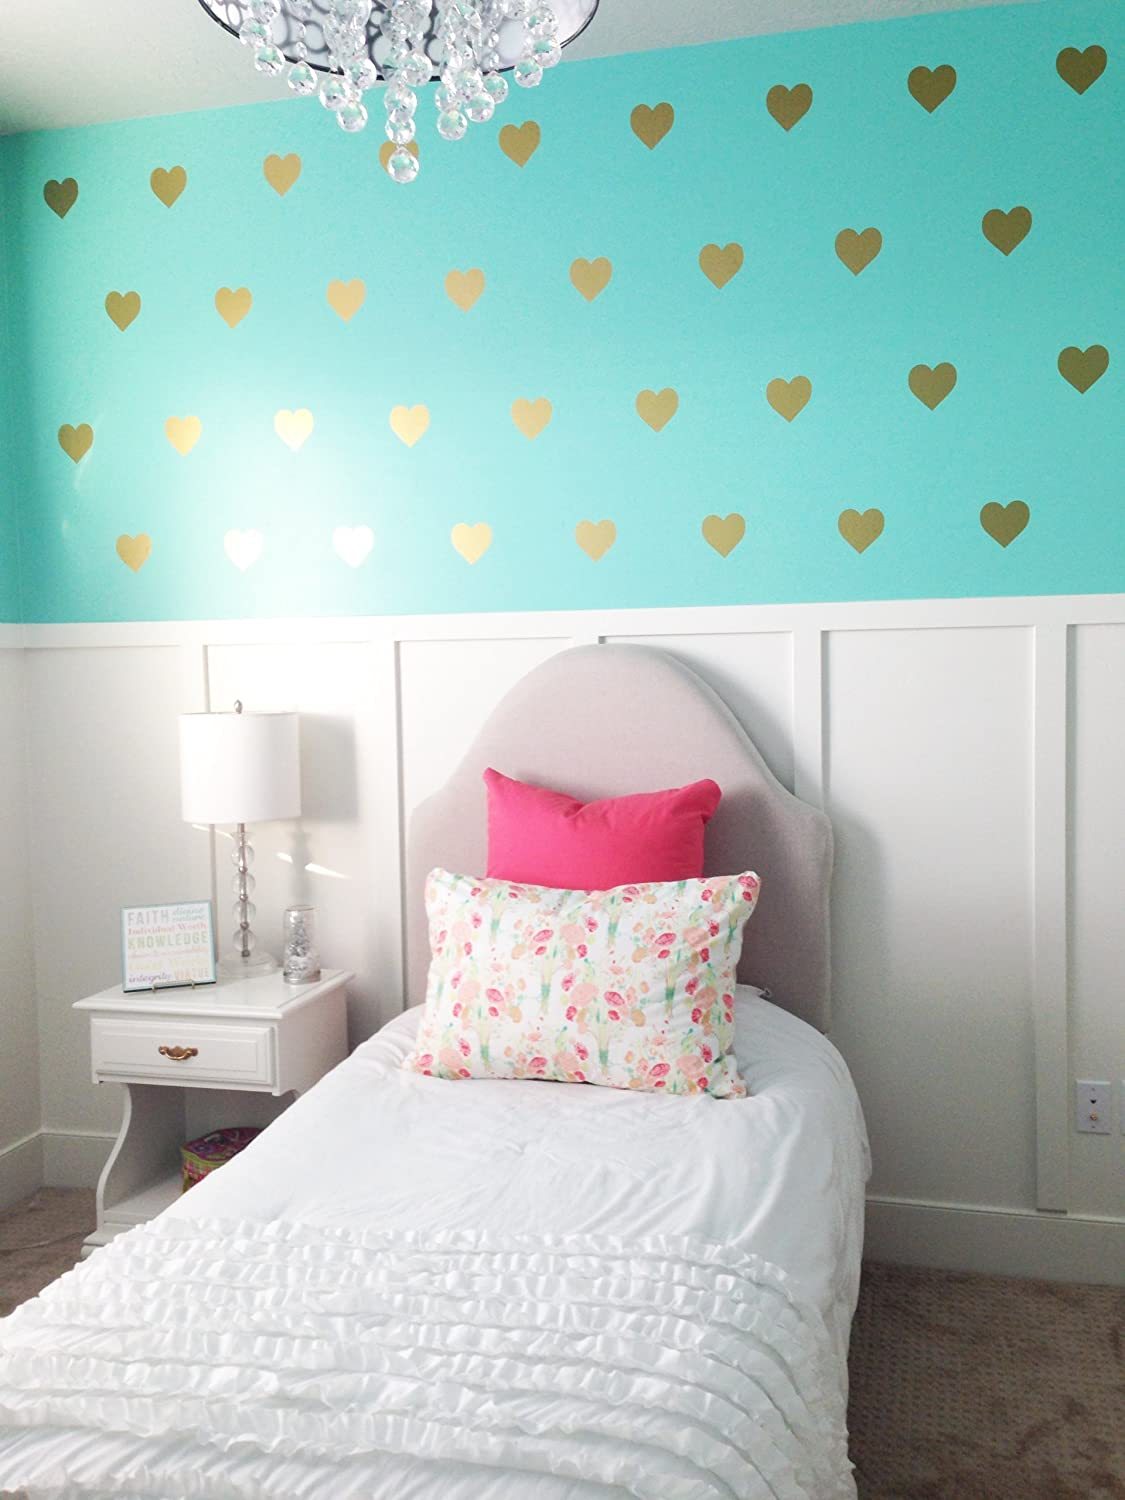 Vinyl Wall Decals Removable Wall Stickers Hearts (Gold, 3 Part 91